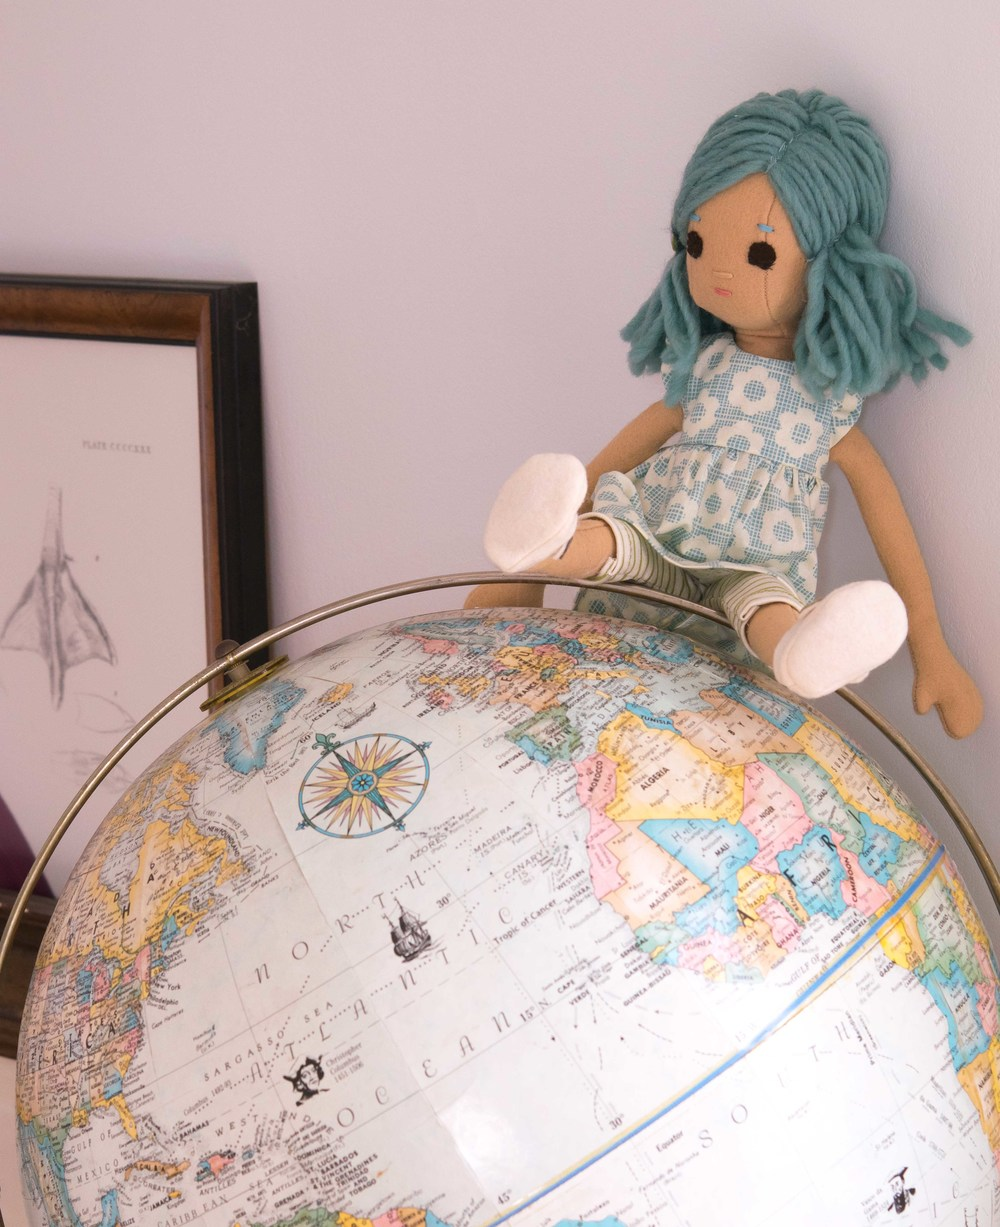 extrasmall Phoebe world-1.jpg